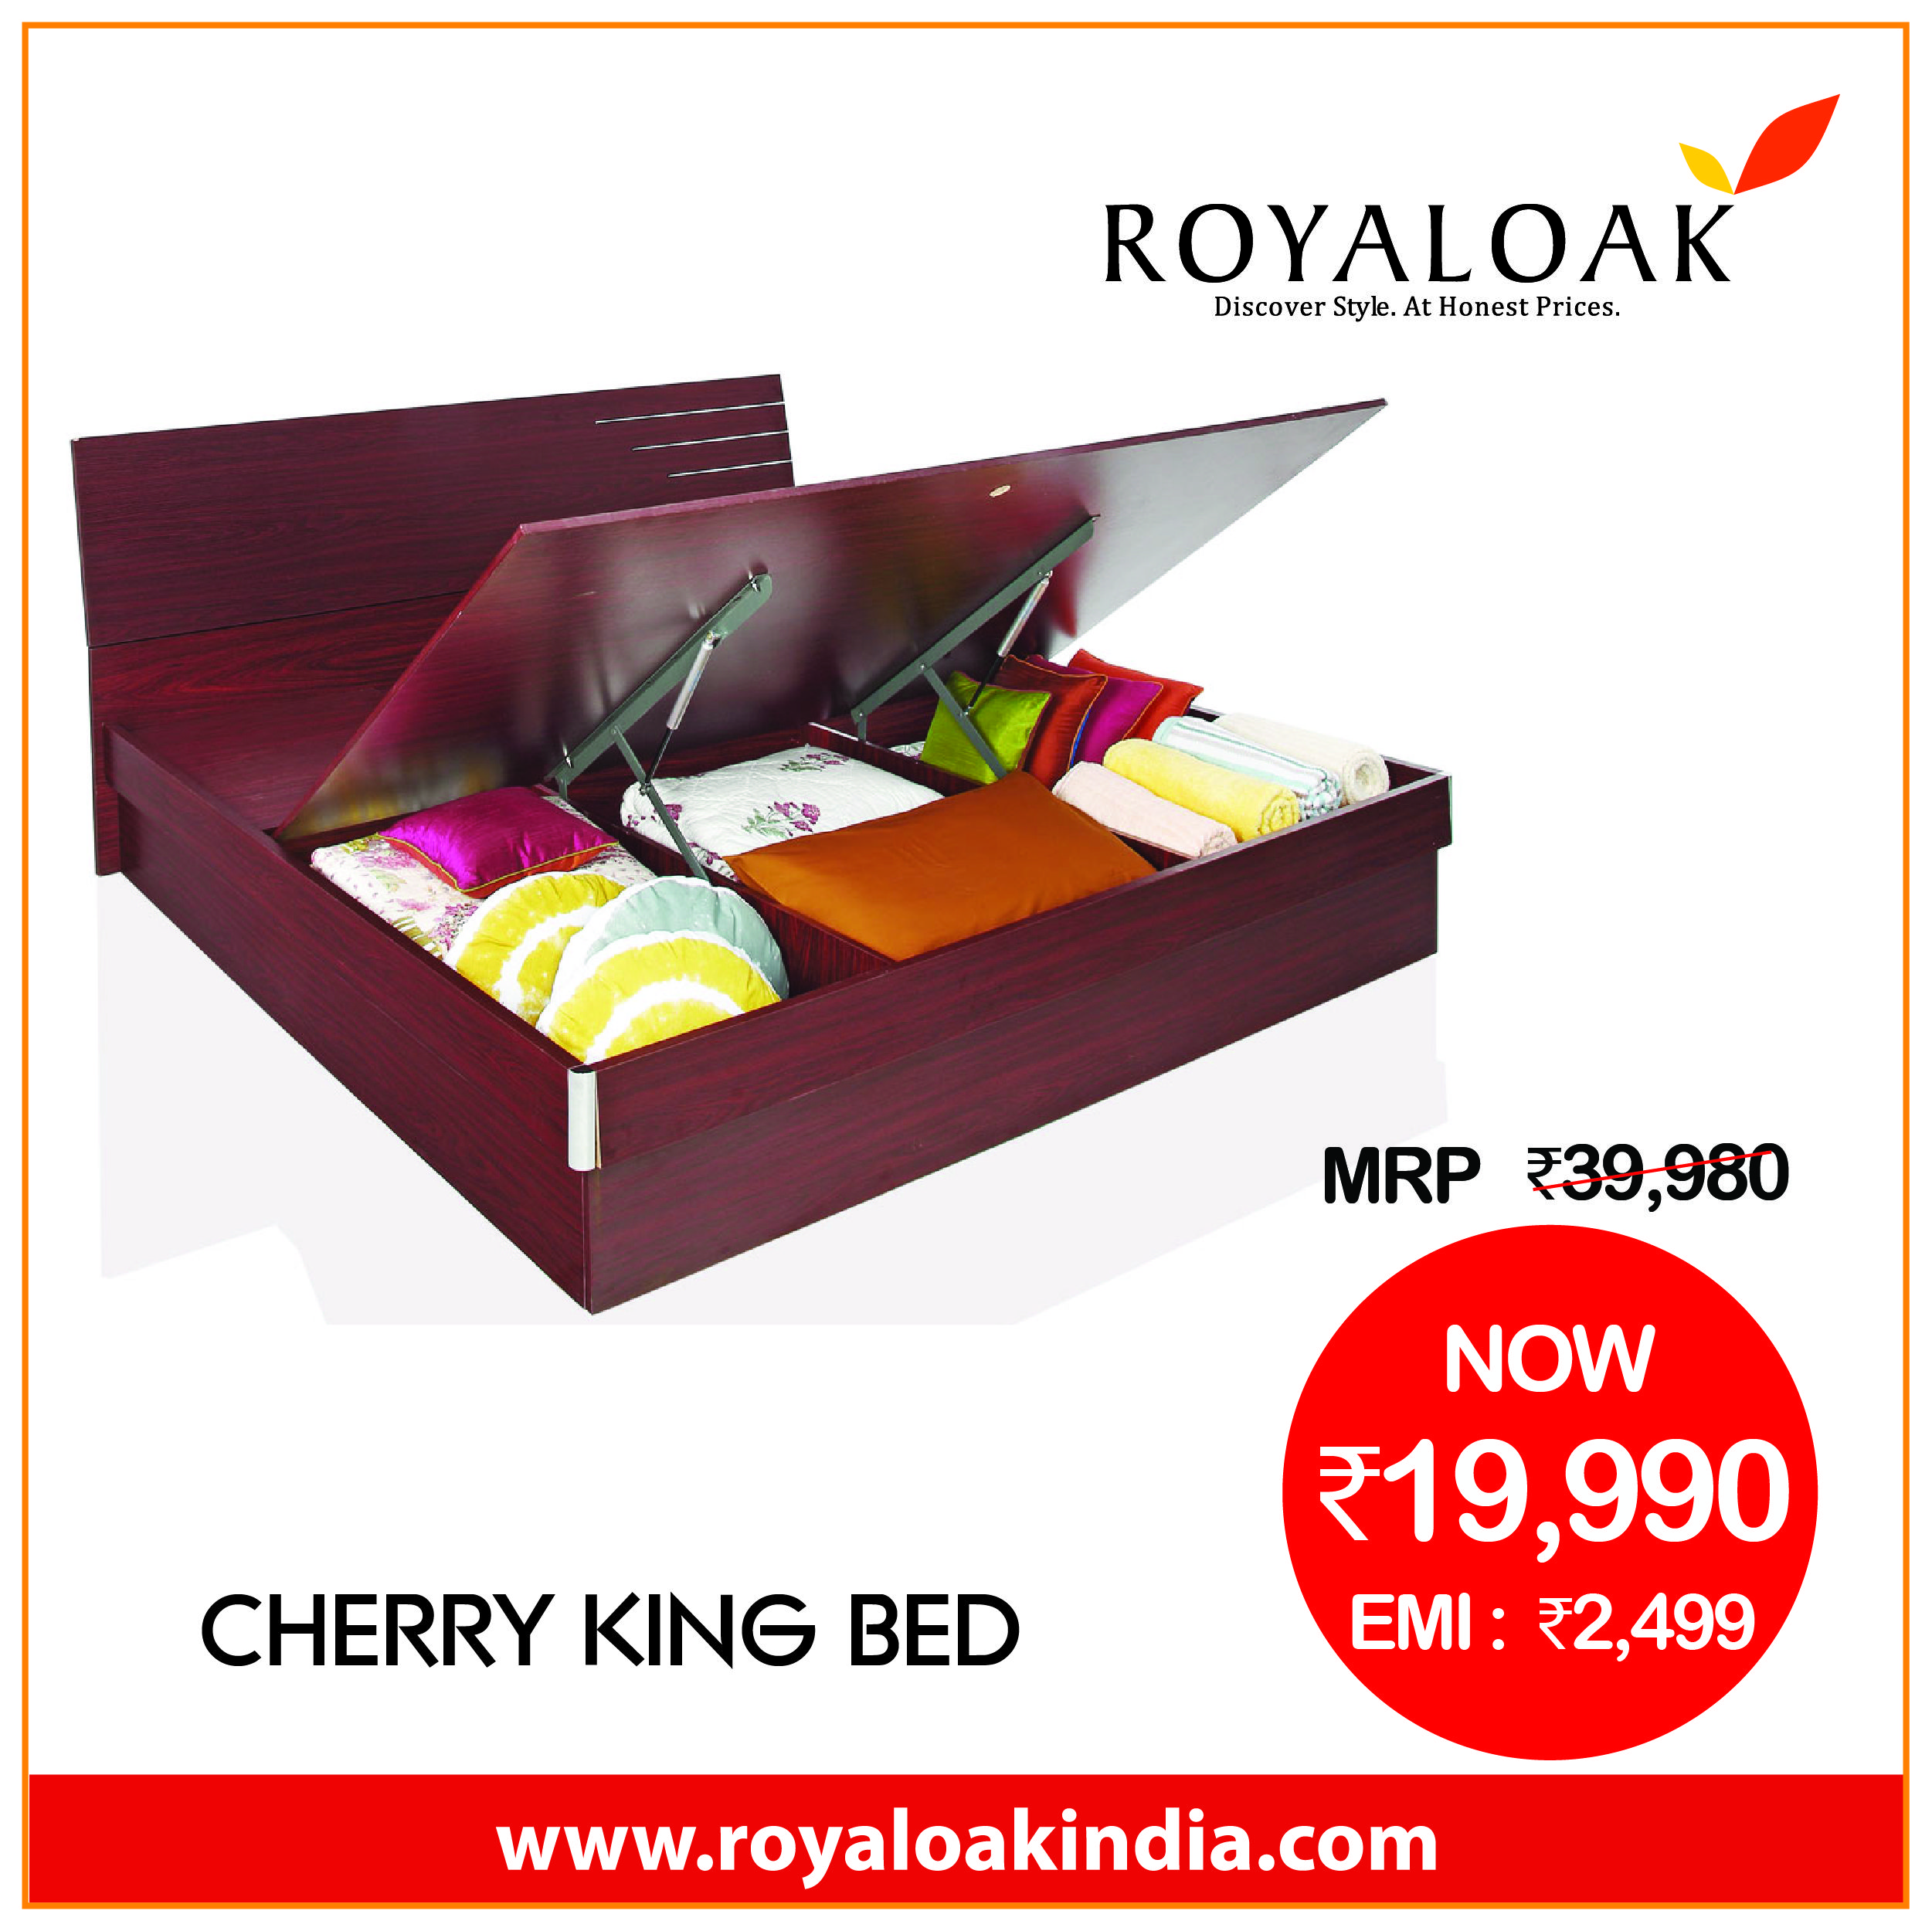 Pin By Royaloak Furniture On Royaloak King Beds Bed Furniture